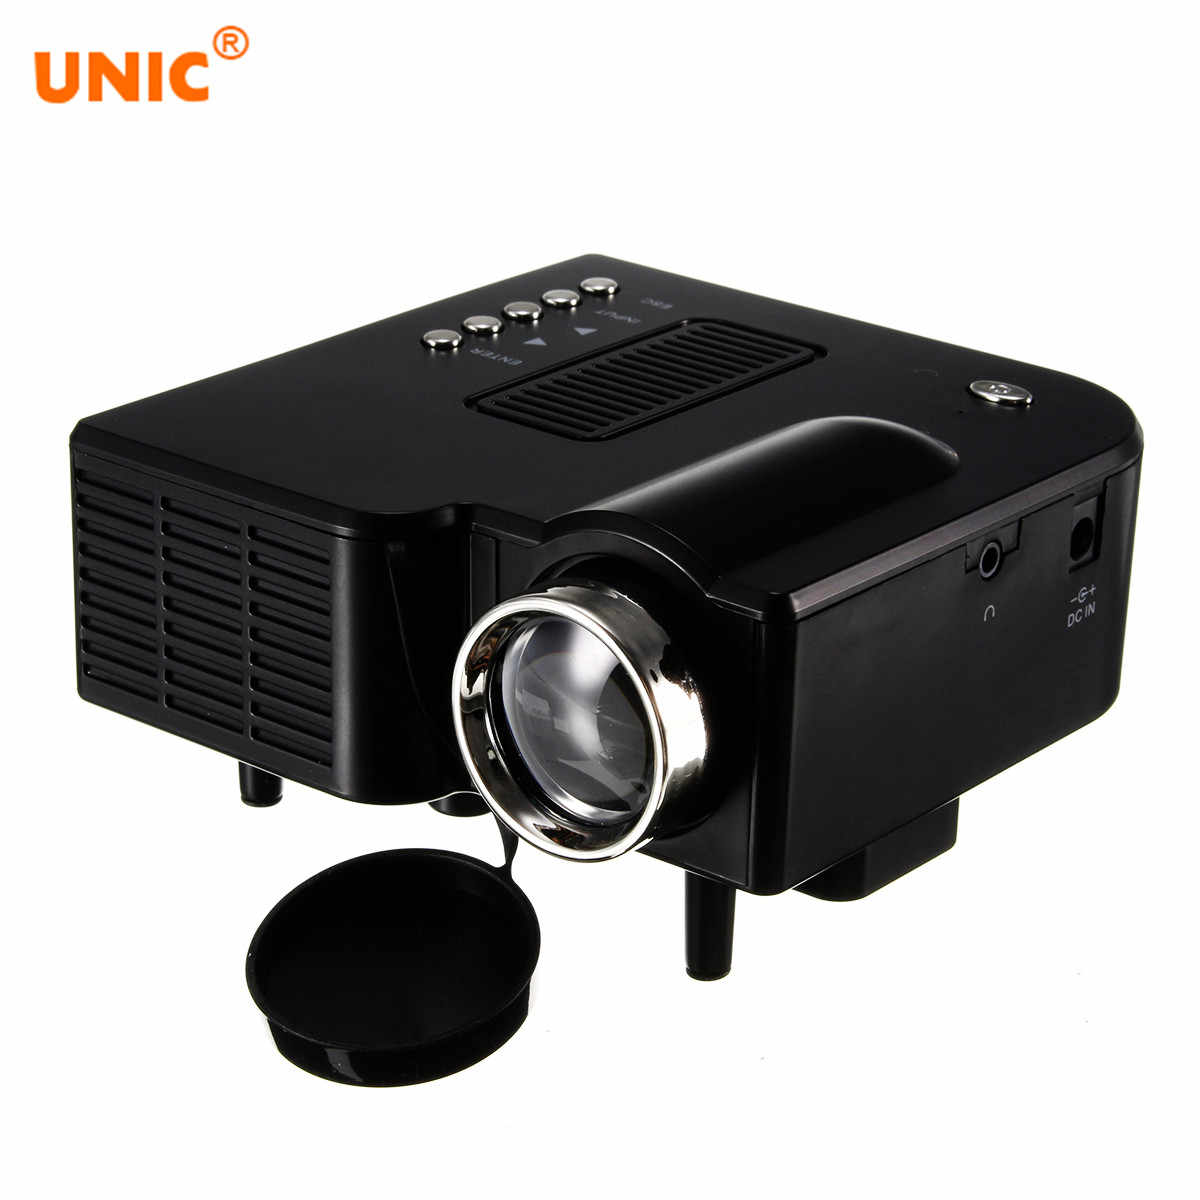 UNIC UC28+ Portable LED Projector Cinema Theater Mini Projector USB/SD/AV Input Mini Entertainment Projector